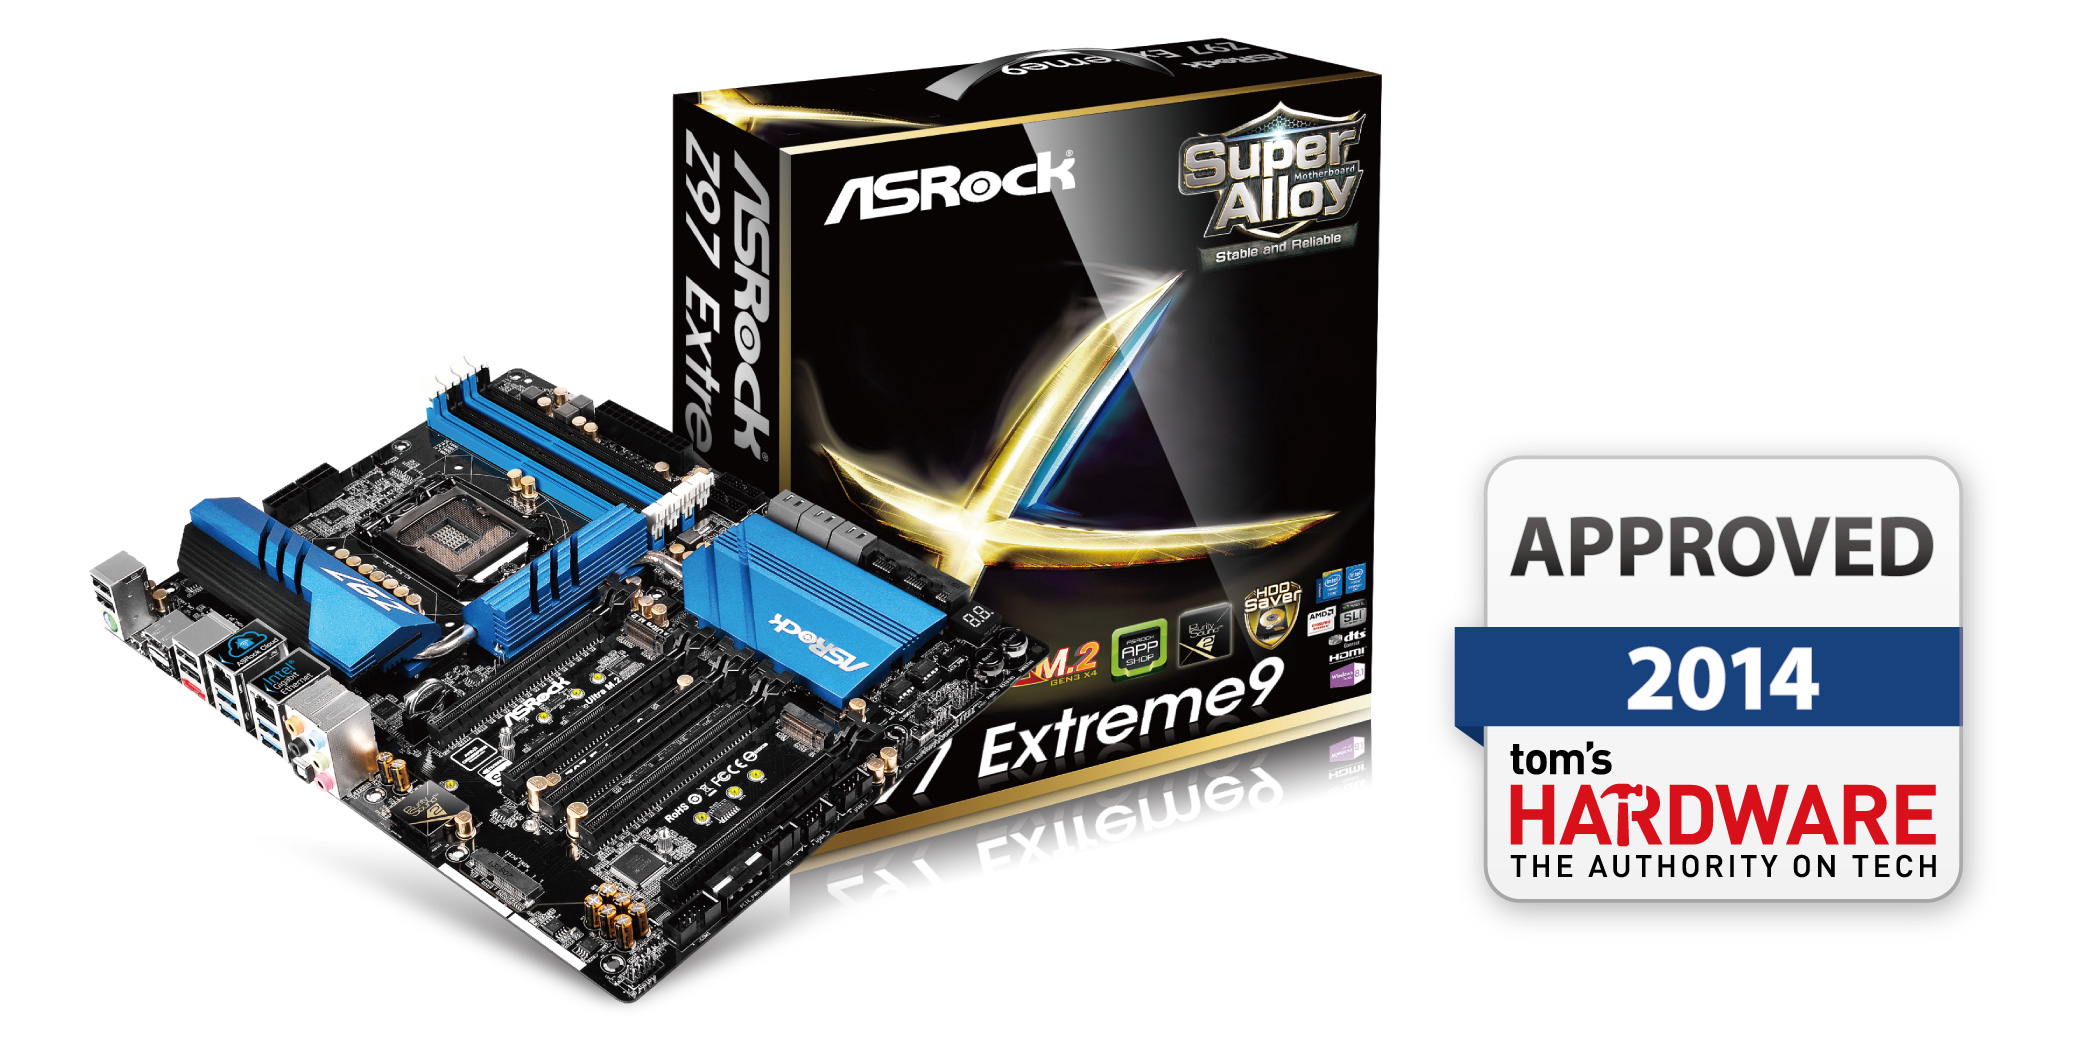 ASRock Z97 Extreme9 Gets Tom's Hardware 2014 Approved